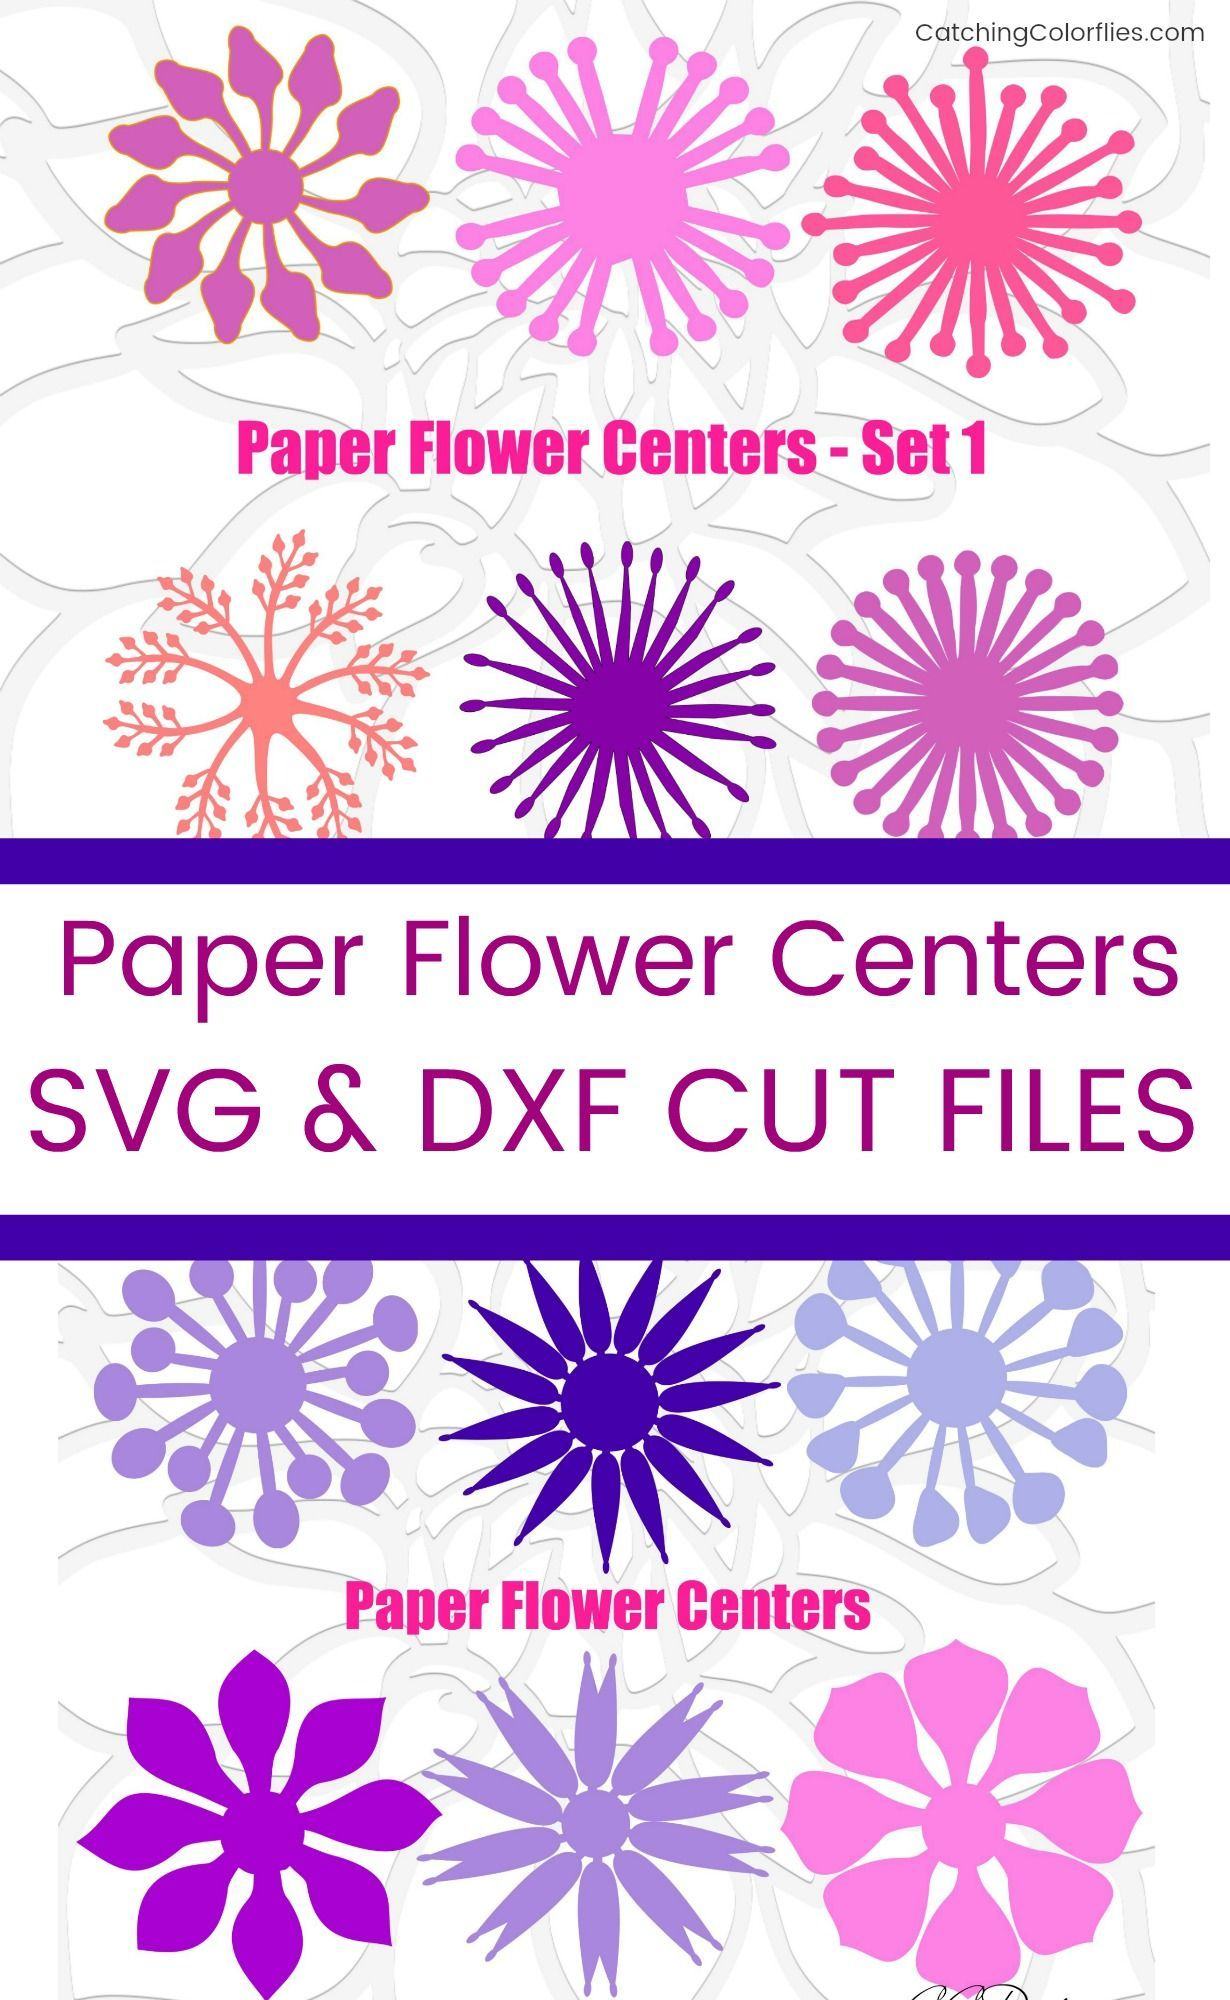 Center Templates for Paper Flowers, Flower Center SVG Template, Center Template for Giant Paper Flowers, Instant Download